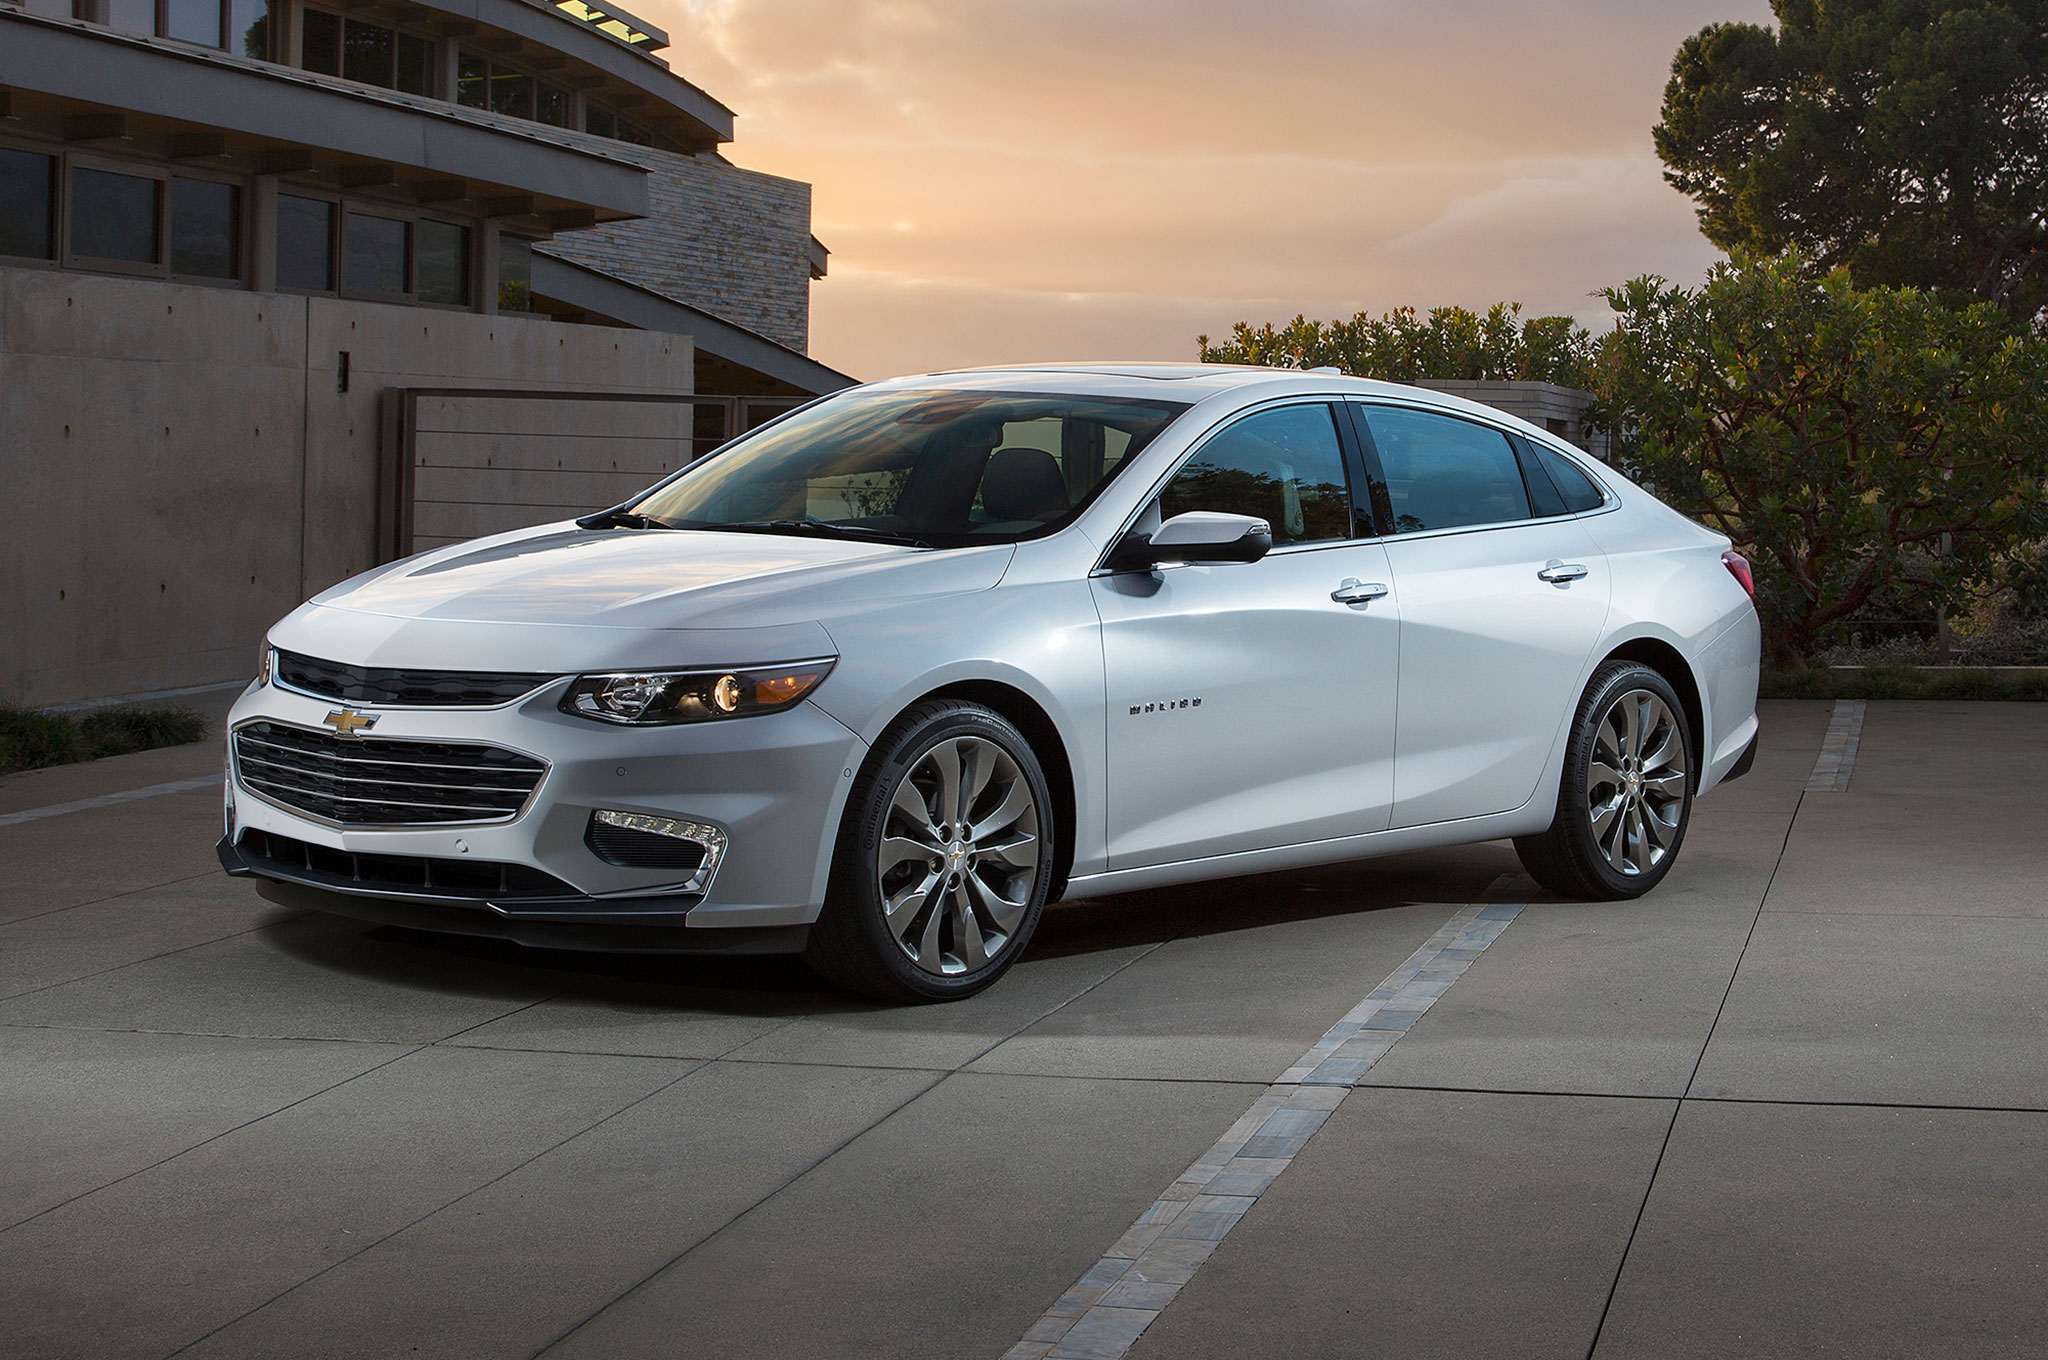 2016 Chevy Malibu & Top 2016 Malibu Highlights and Ford Fusion Comparison - McCluskey ... markmcfarlin.com